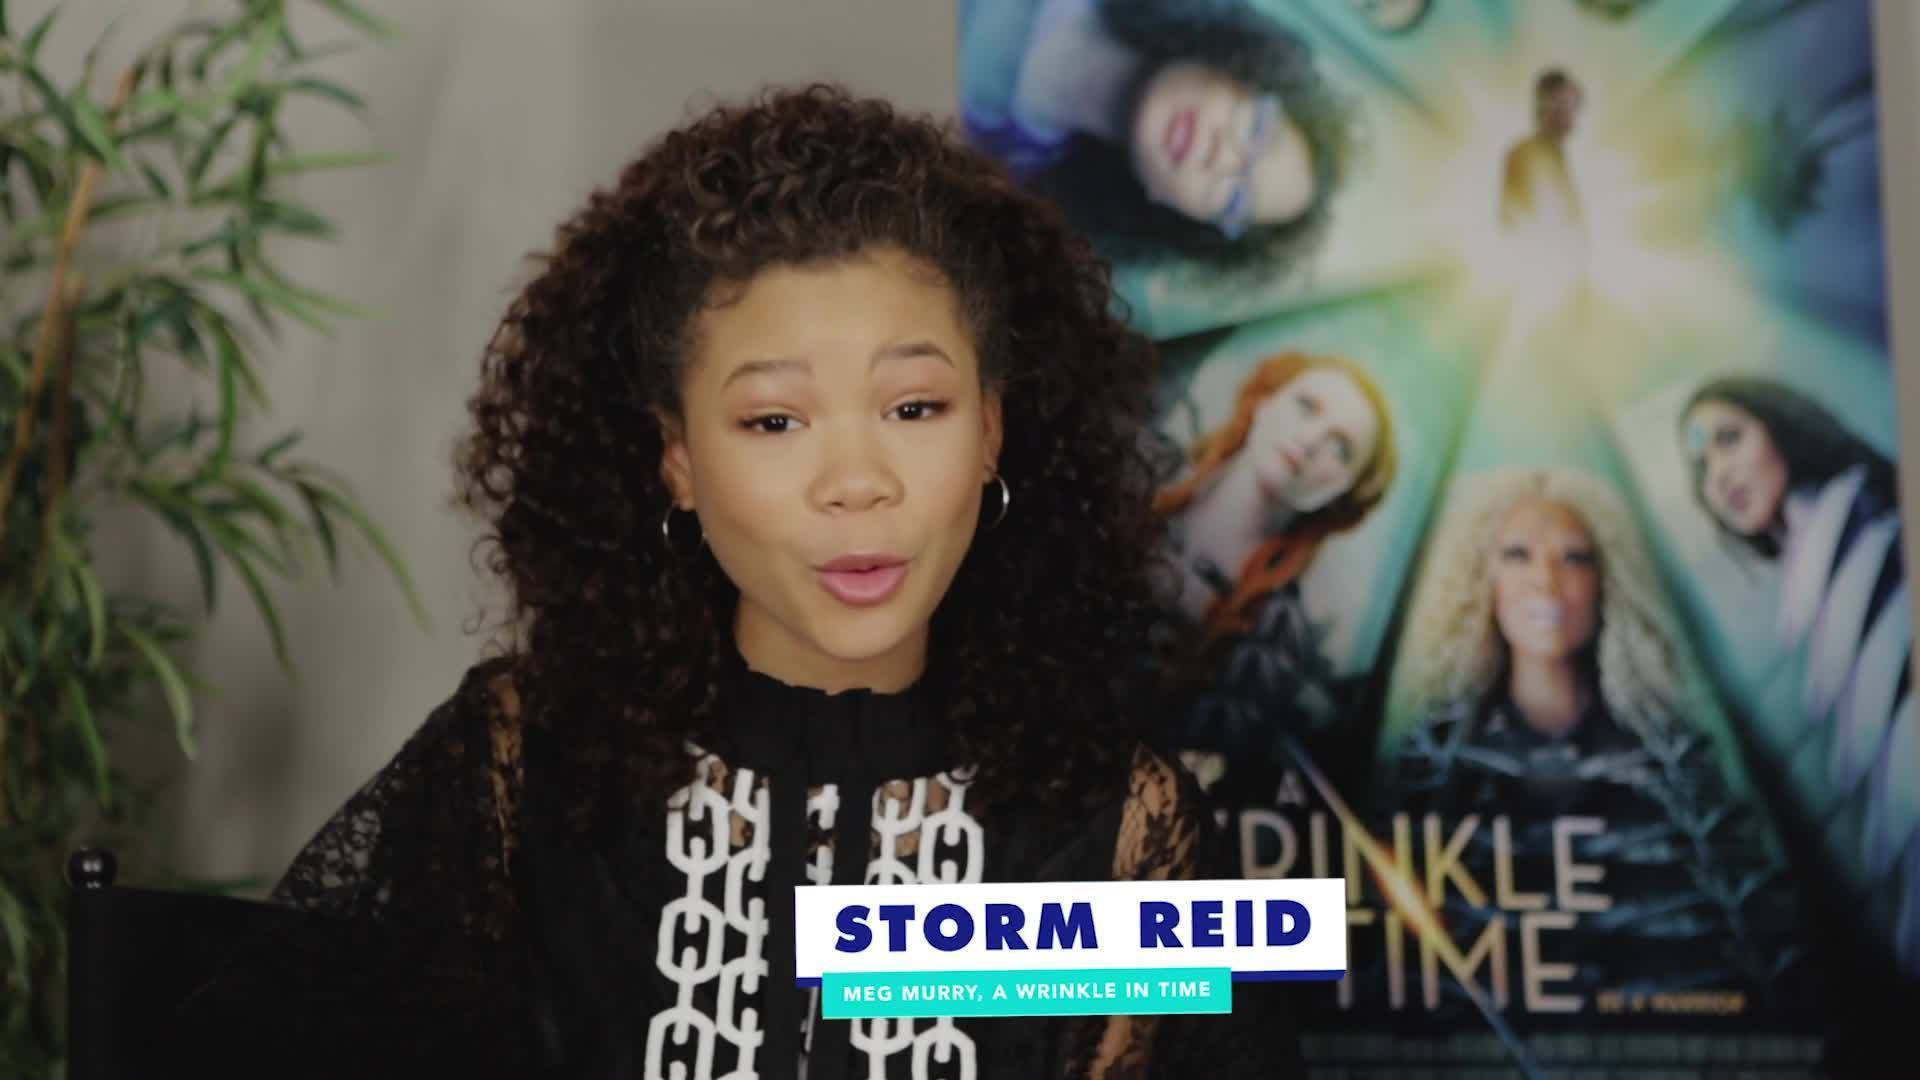 """Storm Reid From A Wrinkle in Time Takes the """"Which Disney Heroine Are You?"""" Quiz 